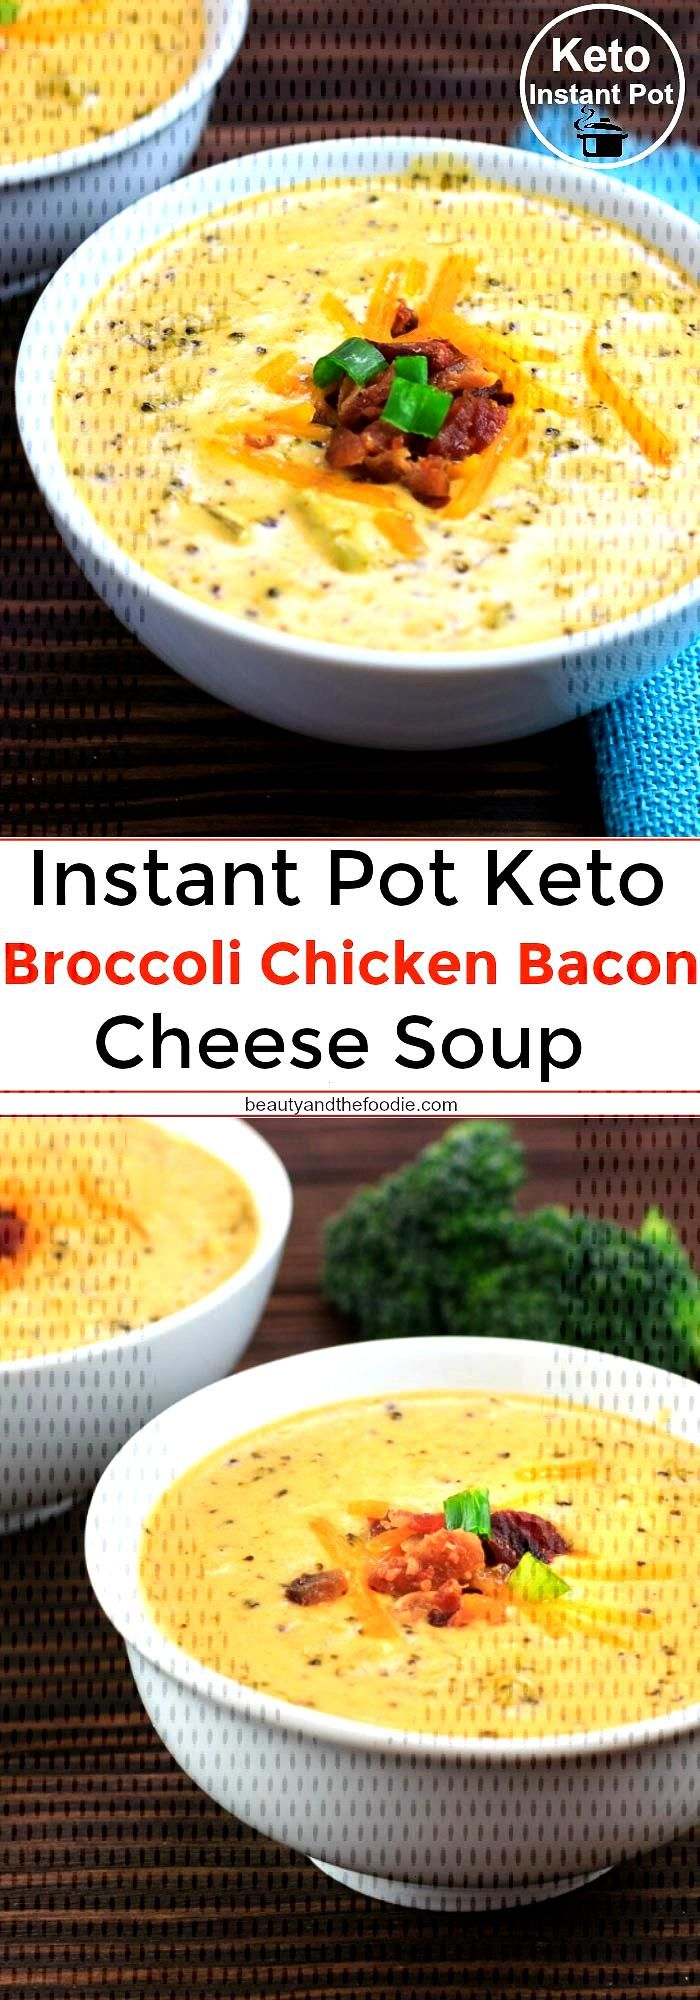 Instant Pot Keto Broccoli Chicken Bacon Cheese Soup | Beauty and the FoodieYou can find Keto instan